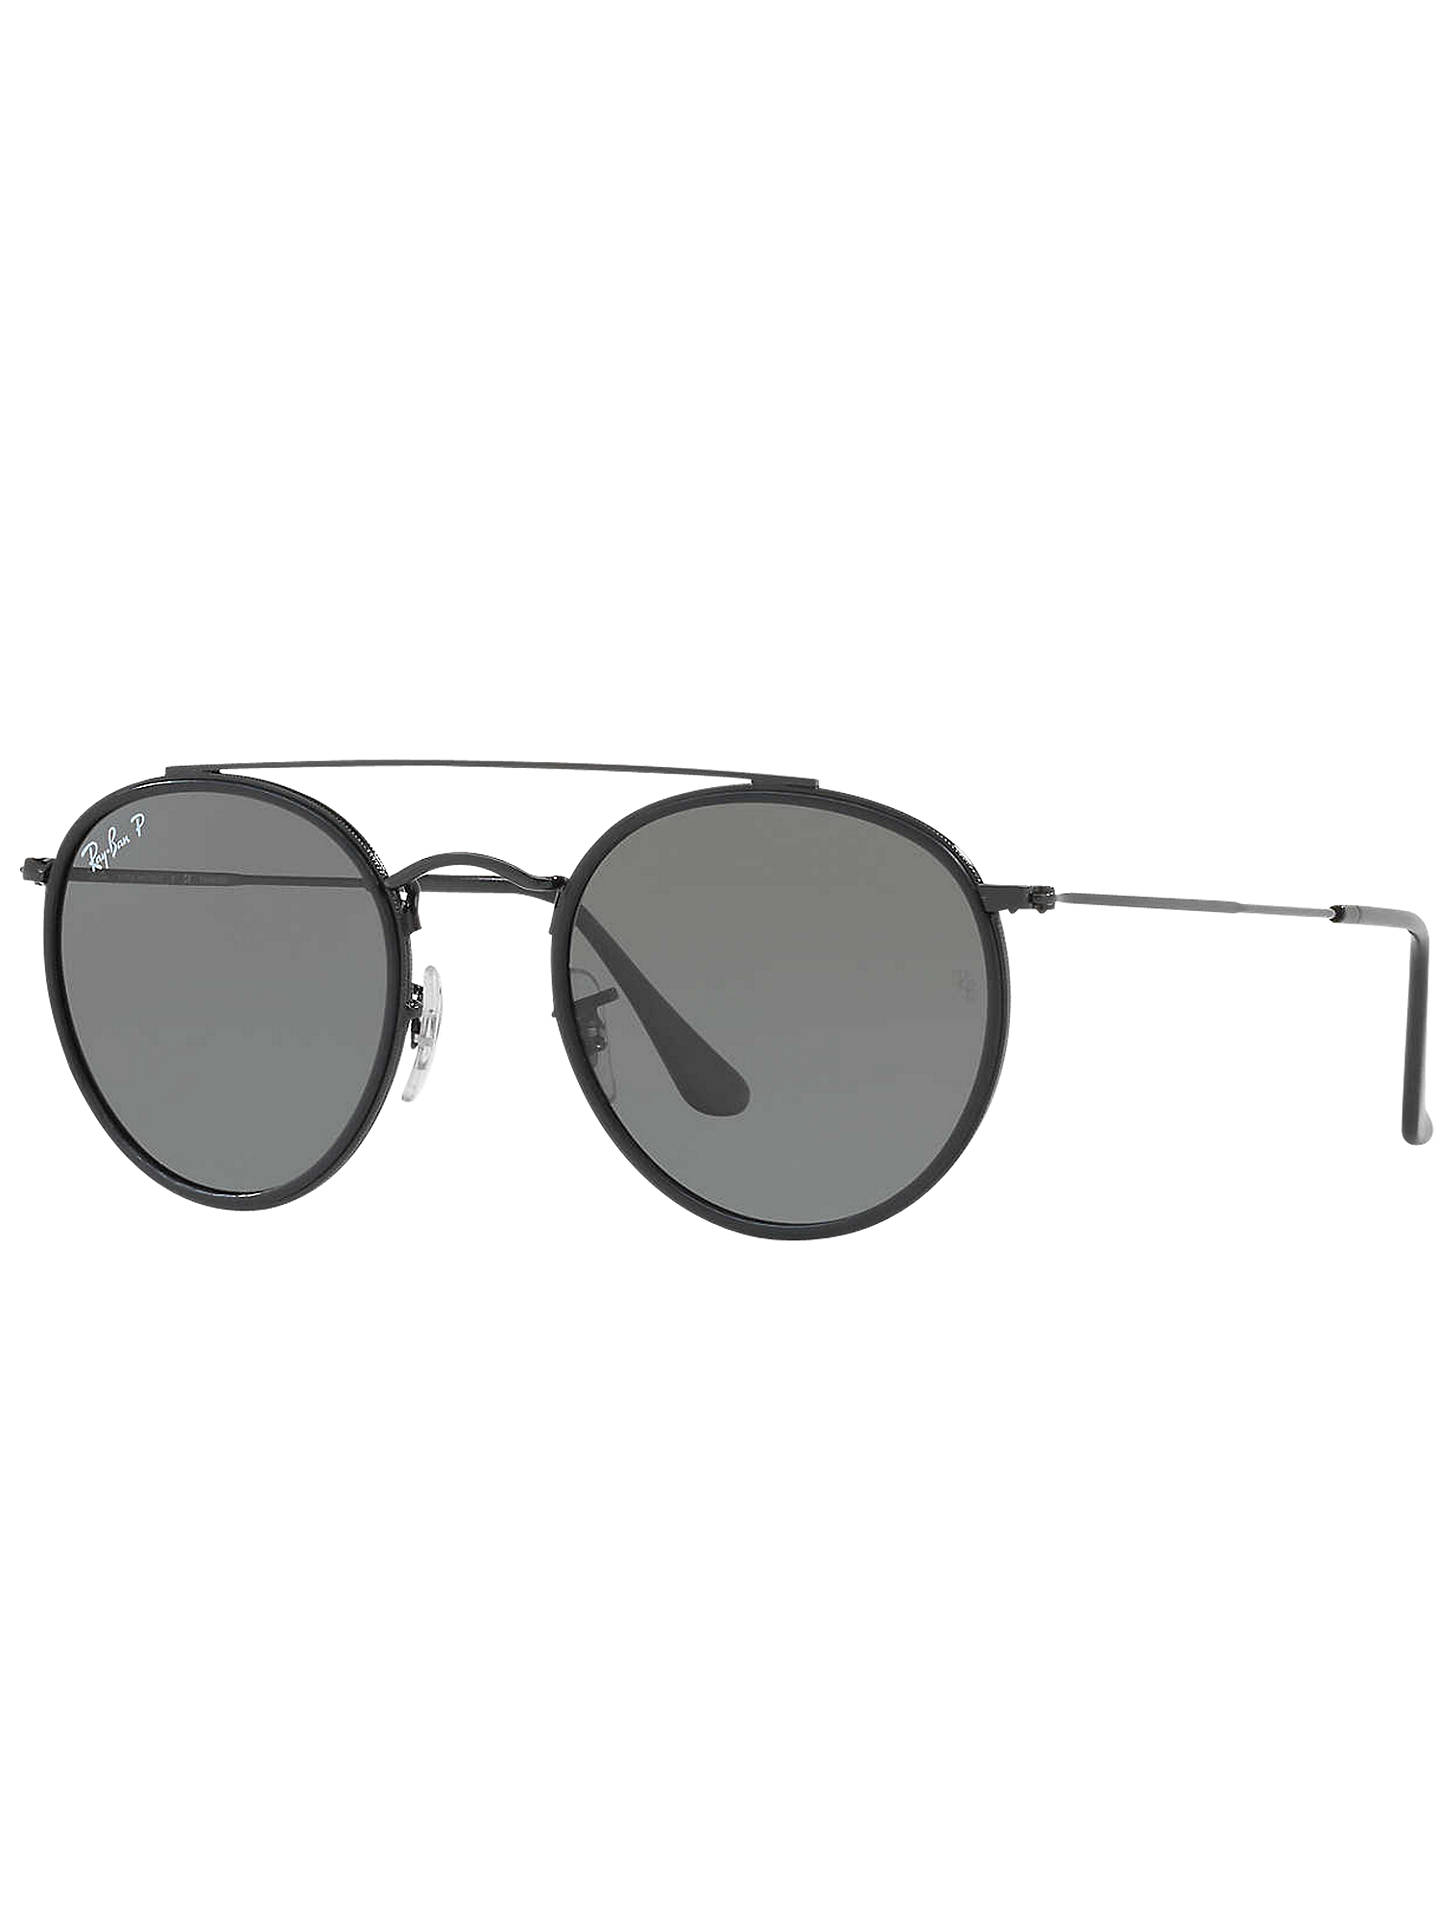 f2f6c5c4fa5 Ray-Ban RB3647N Polarised Double Bridge Round Sunglasses at John ...